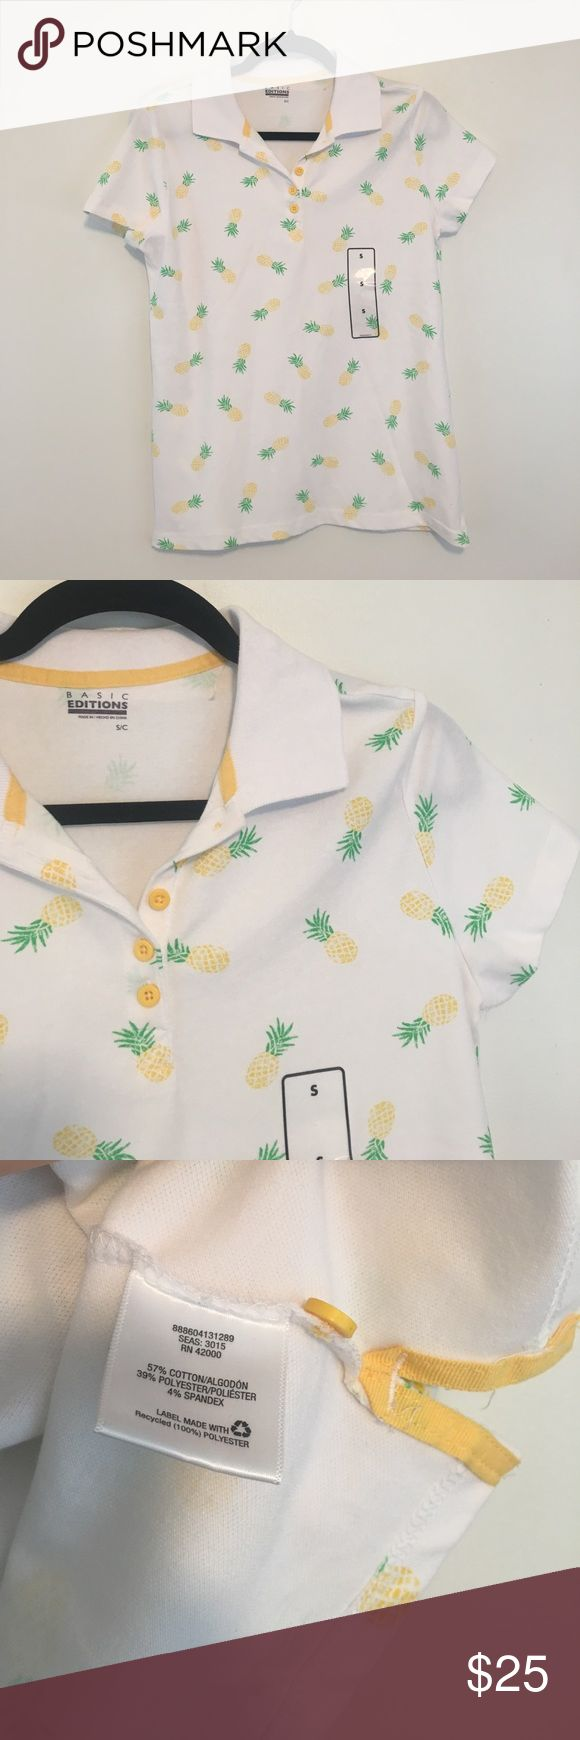 """Pineapple Print Polo Pullover Summer Fun Quirky Tuck into cargo shorts and have a blast! Bust is about 18"""" and length about 24"""" -----  About: No trades. Ships in 2 business days or less. All flaws stated in description. Basic Editions Tops Blouses"""